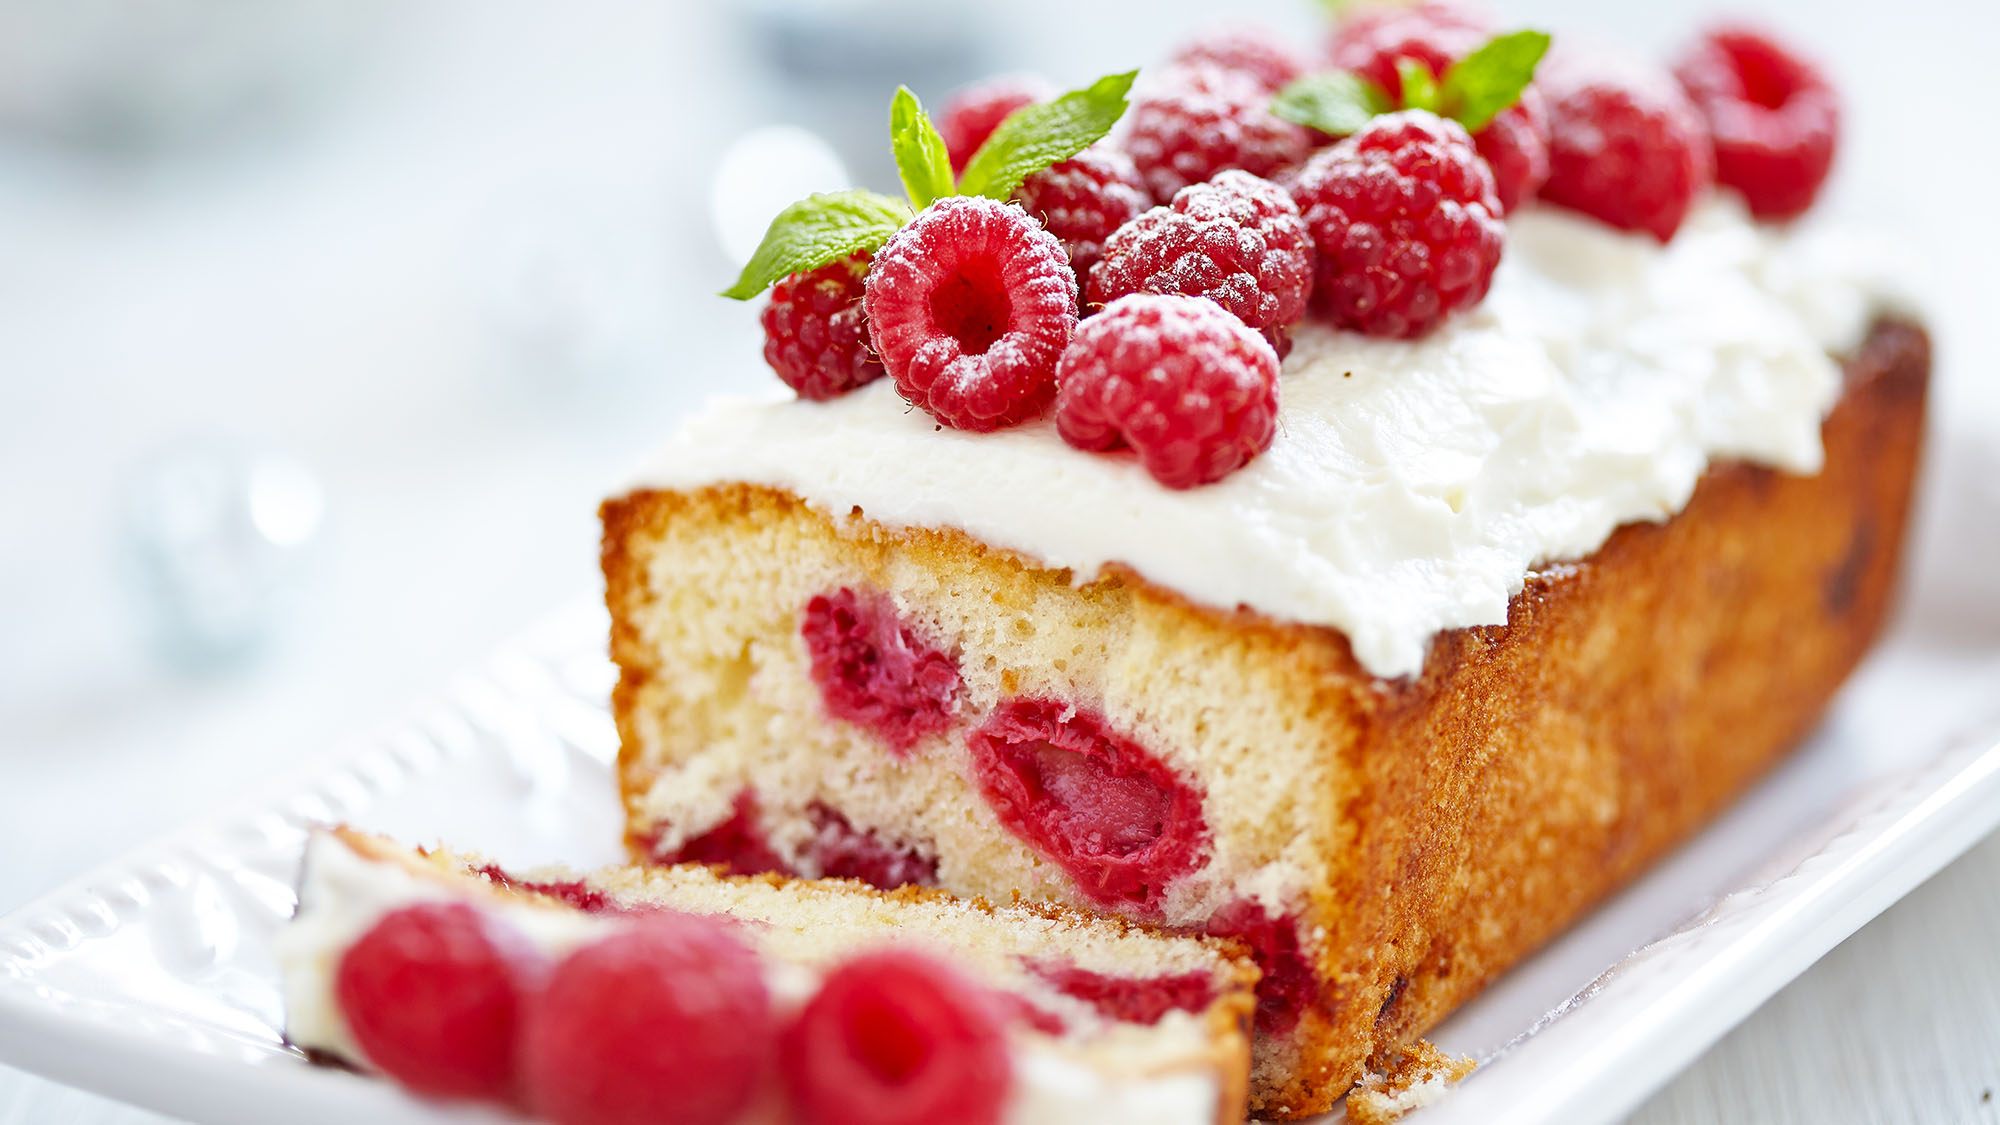 Raspberry banana cake with passionfruit icing